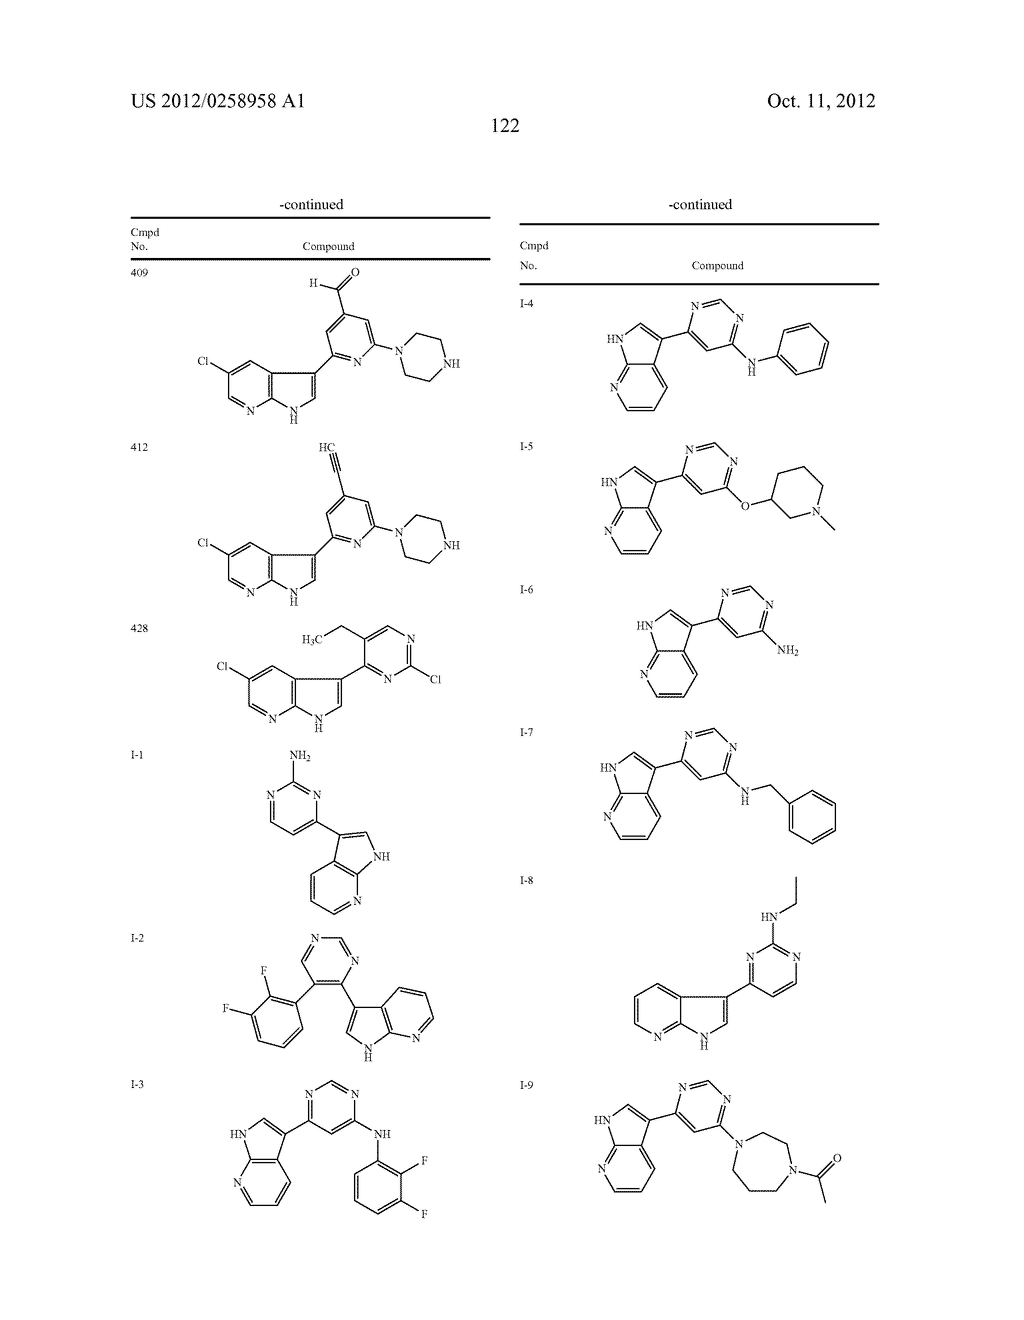 AZAINDOLES USEFUL AS INHIBITORS OF JAK AND OTHER PROTEIN KINASES - diagram, schematic, and image 123